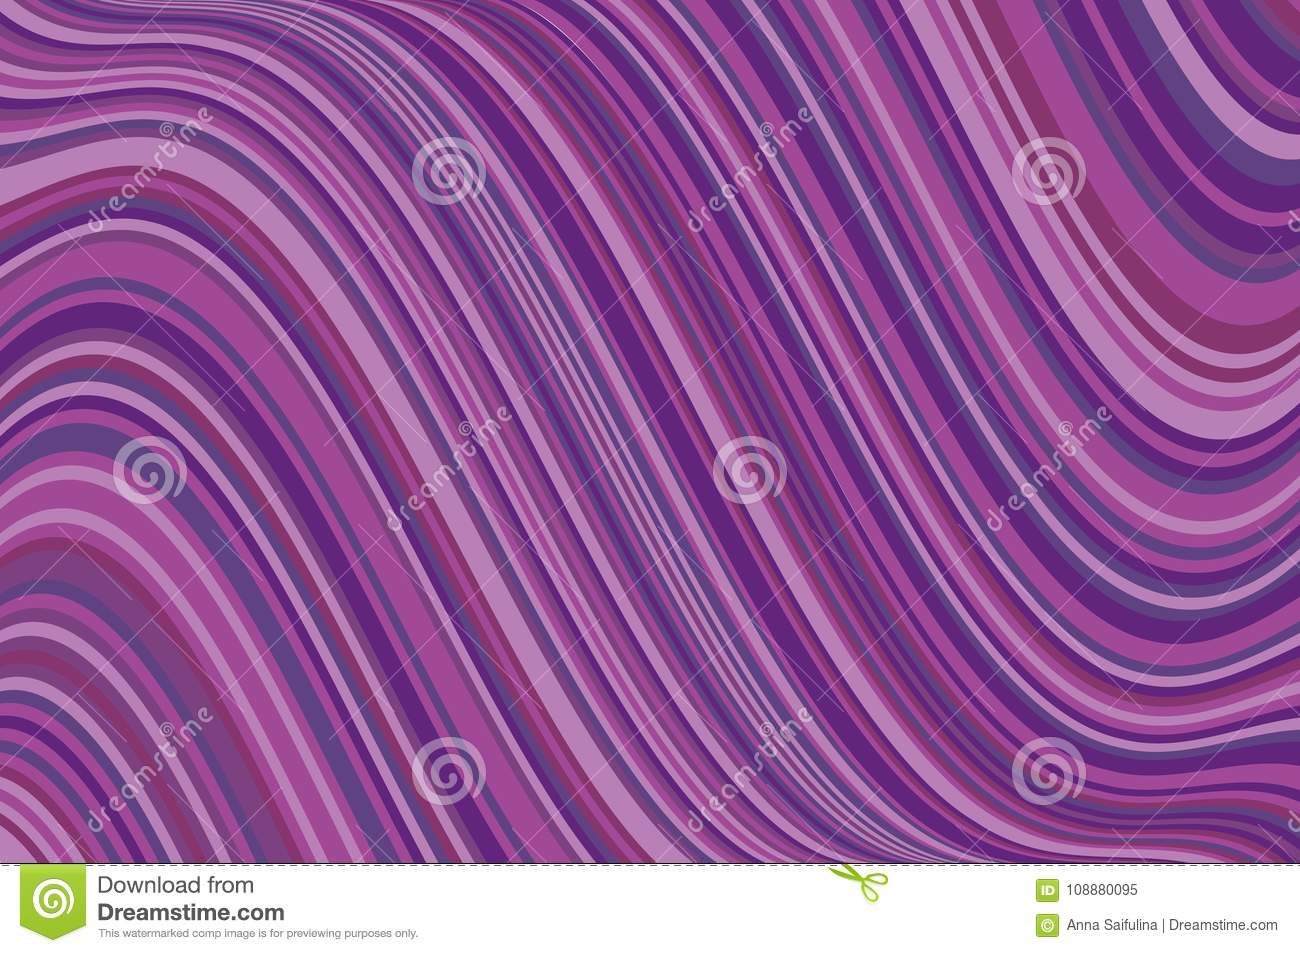 Abstract Background With Oblique Wavy Lines Vector Illustration Different Shades Of Purple Violet Color Stock Vector Illustration Of Graphic Chrome 108880095